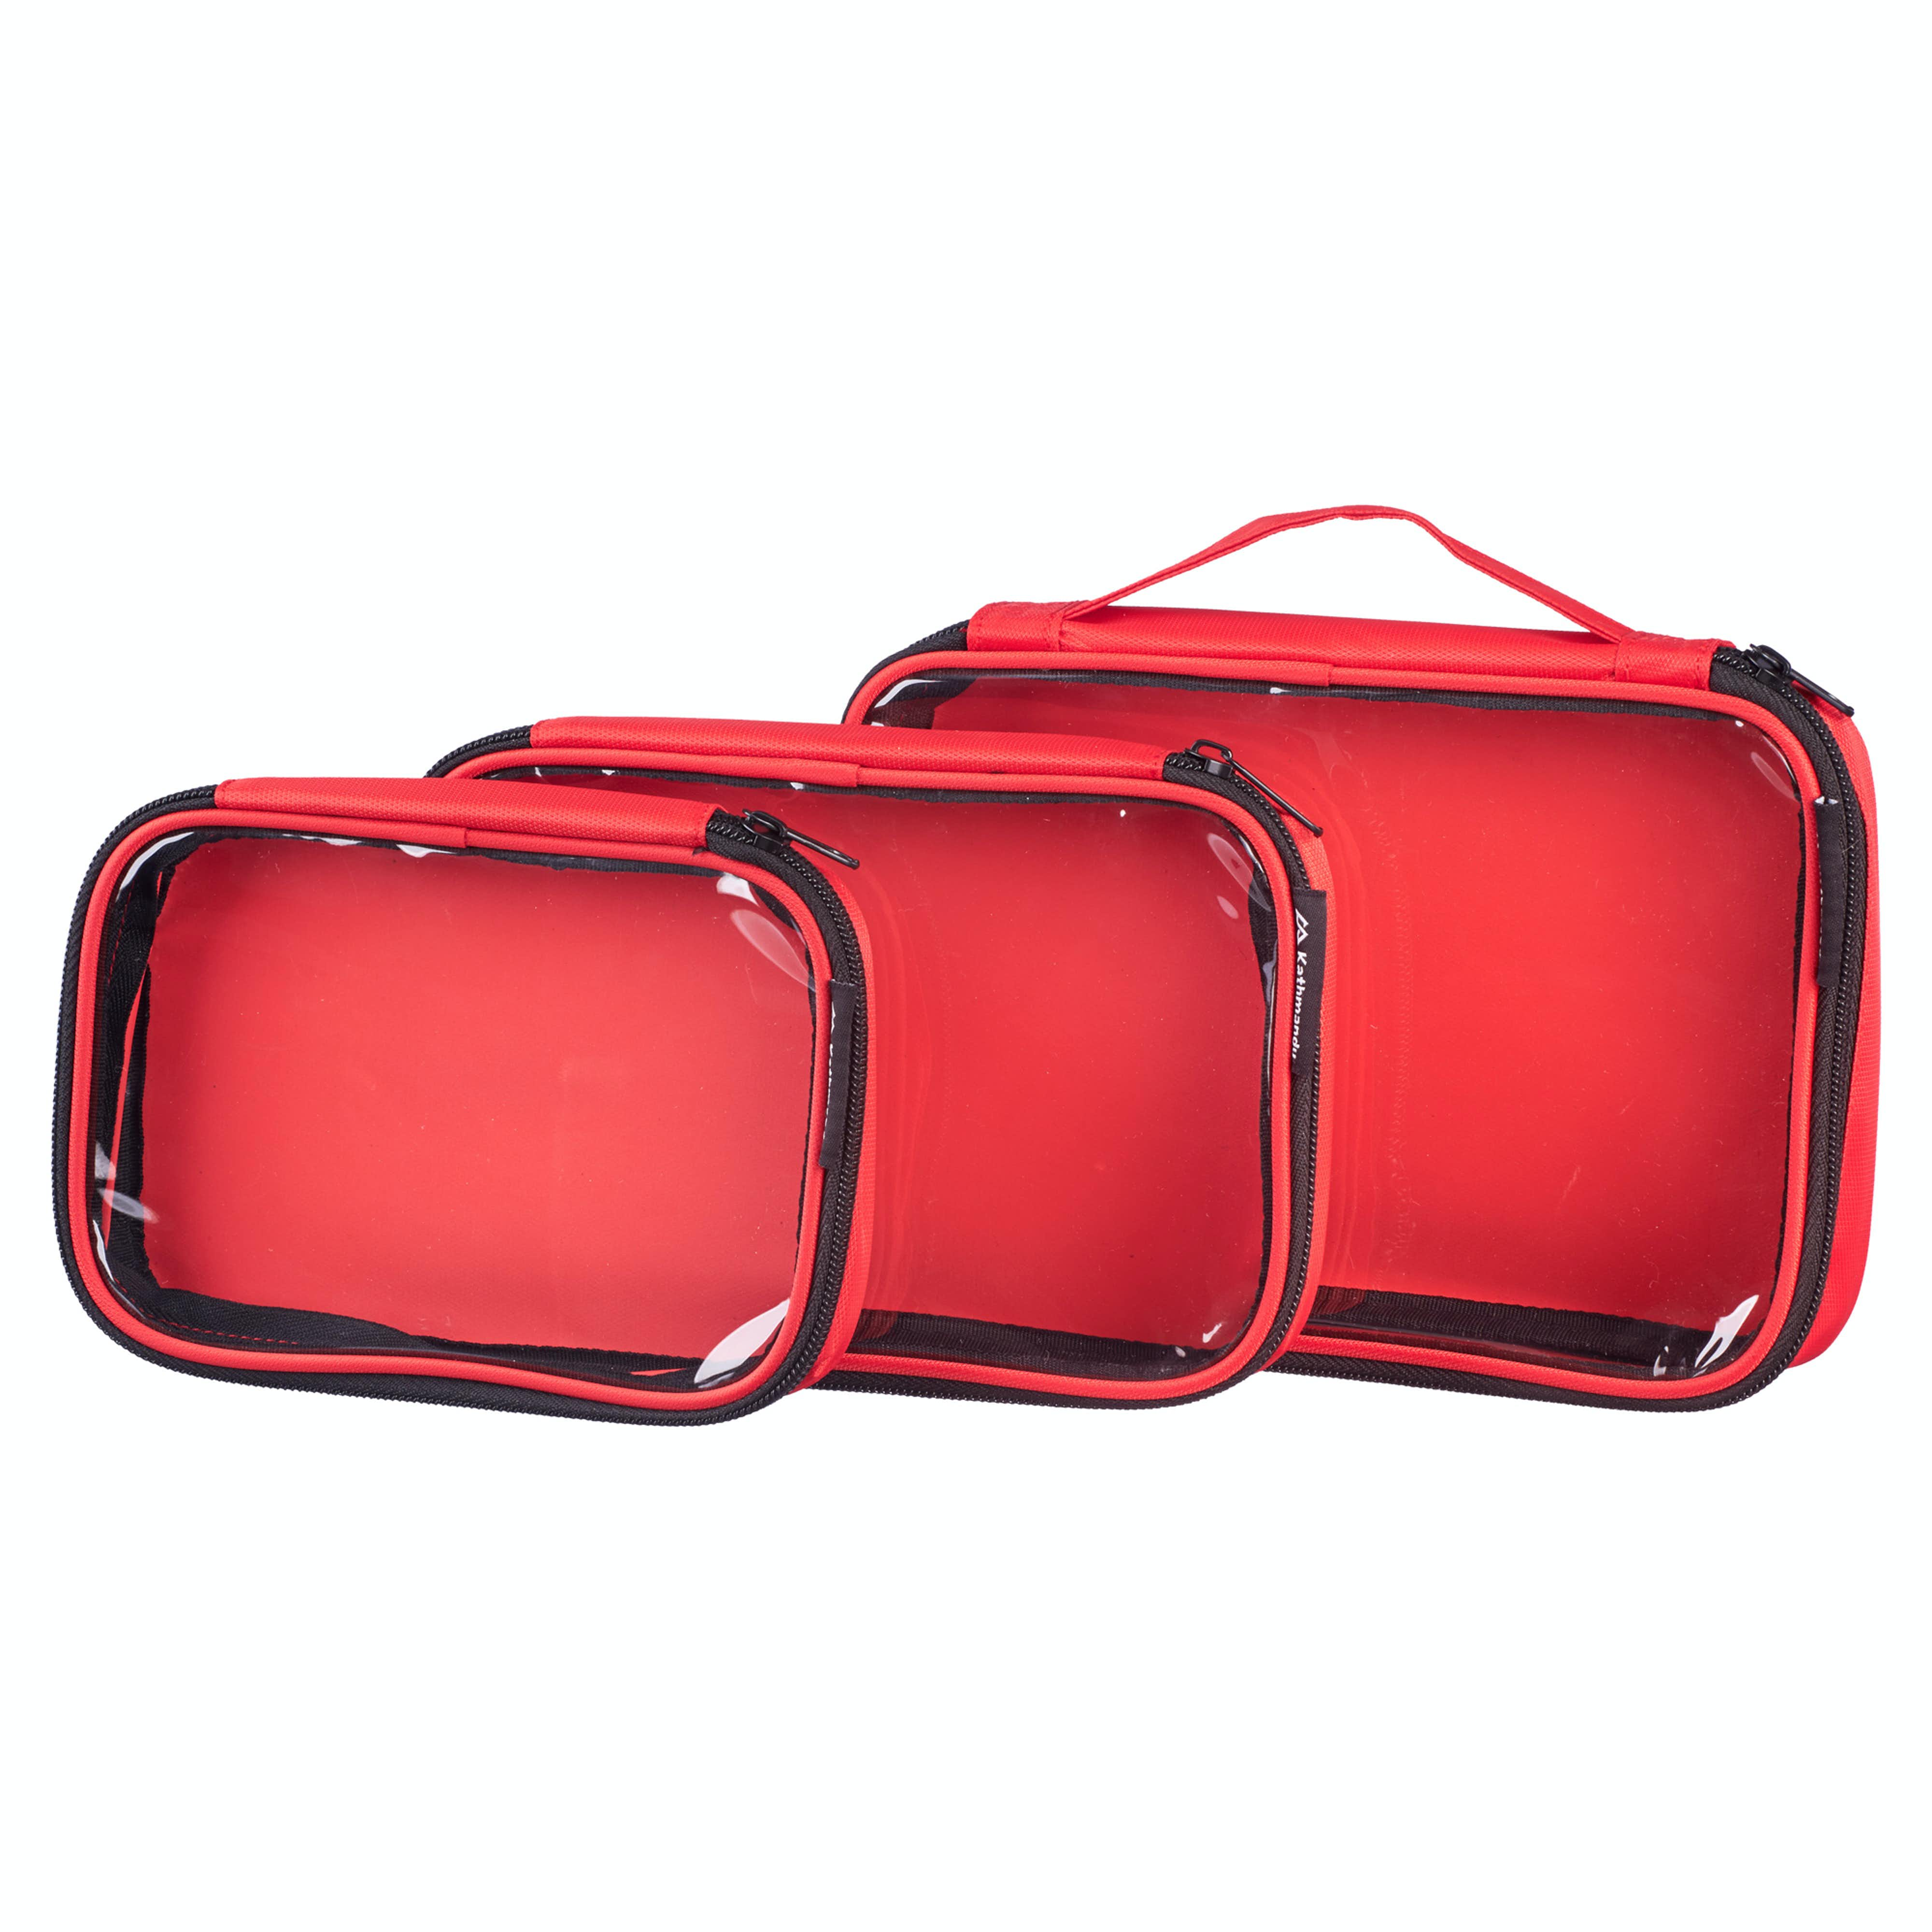 46595430f1 Toiletry Bags